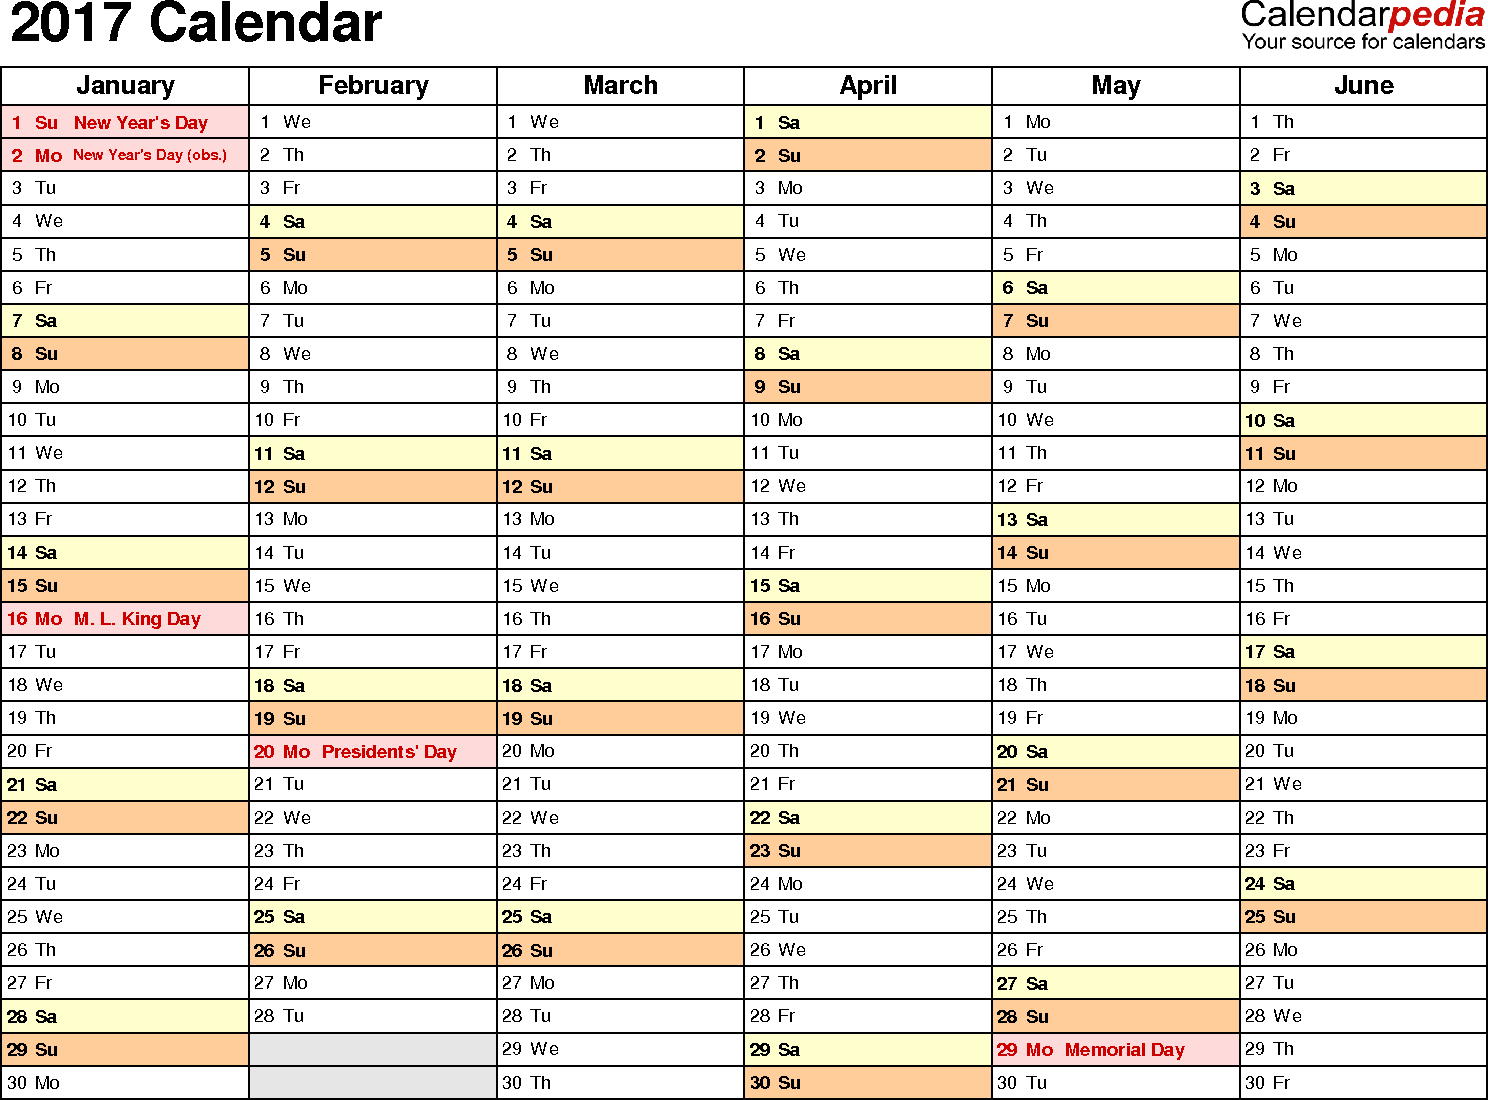 Ediblewildsus  Pleasant  Calendar  Download  Free Printable Excel Templates Xls With Inspiring Template   Calendar For Excel Months Horizontally  Pages Landscape Orientation With Divine Get Microsoft Excel Also Excel  Budget Template In Addition How To Use If And And In Excel And Profitability Index In Excel As Well As Making A Database In Excel Additionally Delete Duplicates On Excel From Calendarpediacom With Ediblewildsus  Inspiring  Calendar  Download  Free Printable Excel Templates Xls With Divine Template   Calendar For Excel Months Horizontally  Pages Landscape Orientation And Pleasant Get Microsoft Excel Also Excel  Budget Template In Addition How To Use If And And In Excel From Calendarpediacom